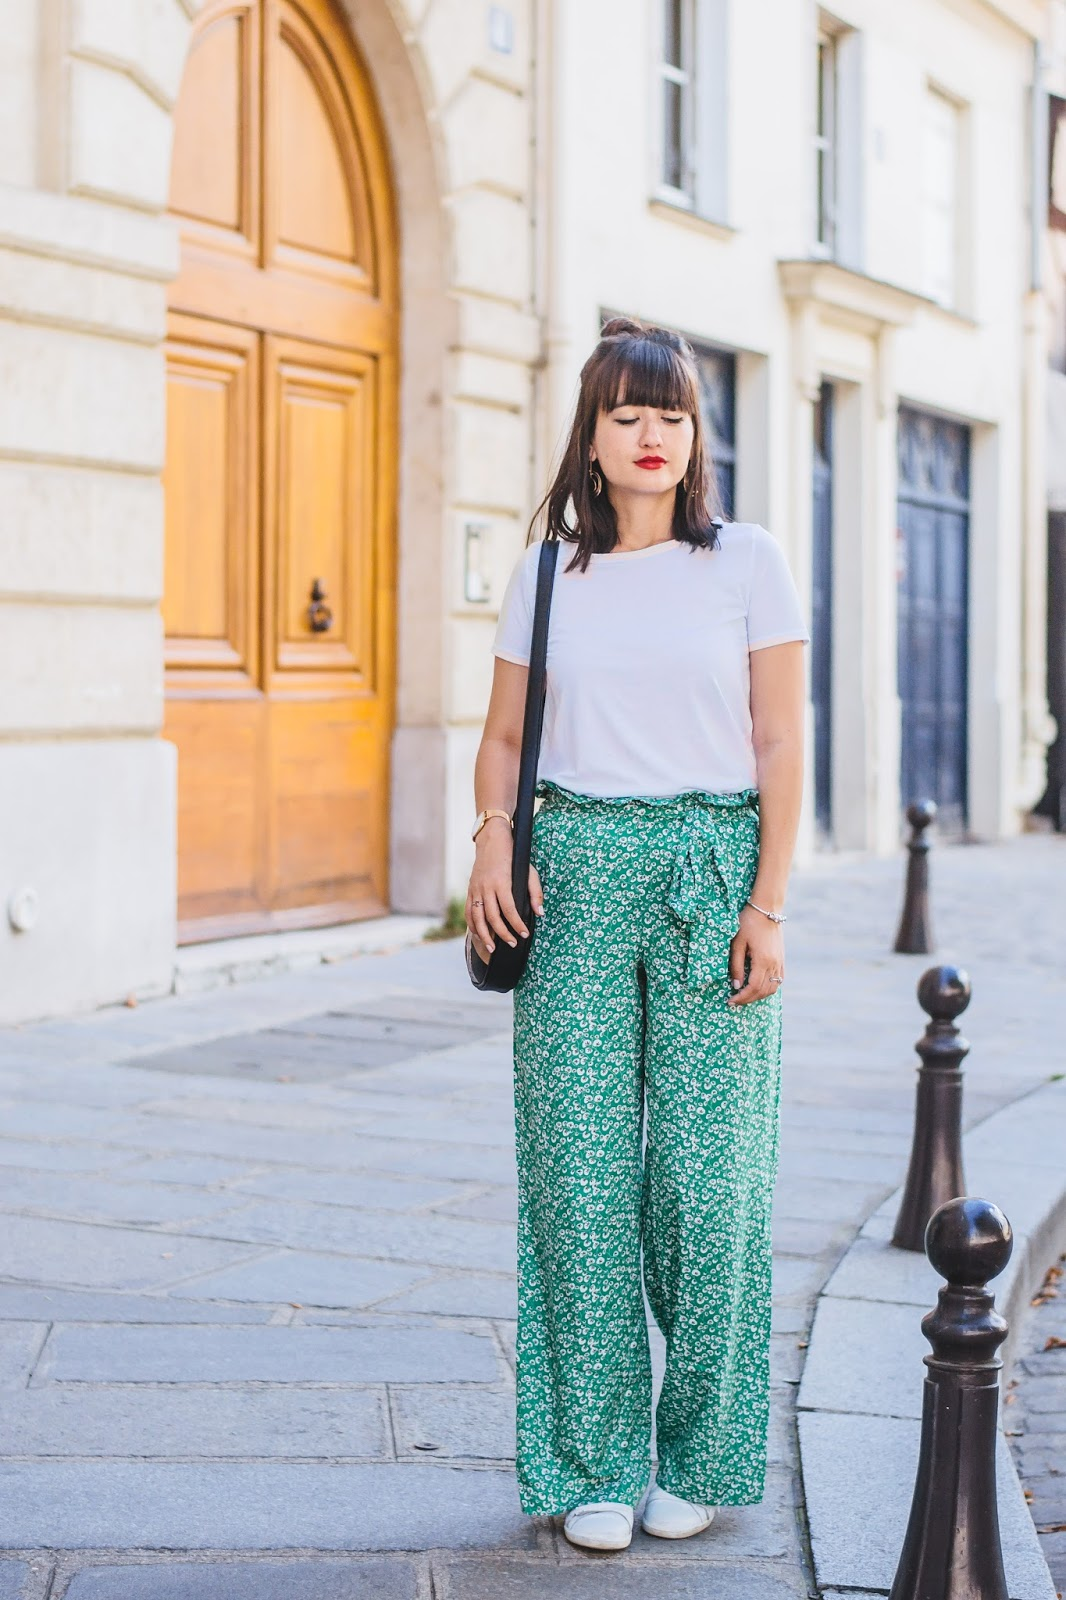 paris-blogger-parisianfashionblogger-palazzonpants-summerstyle-meetmeinparee